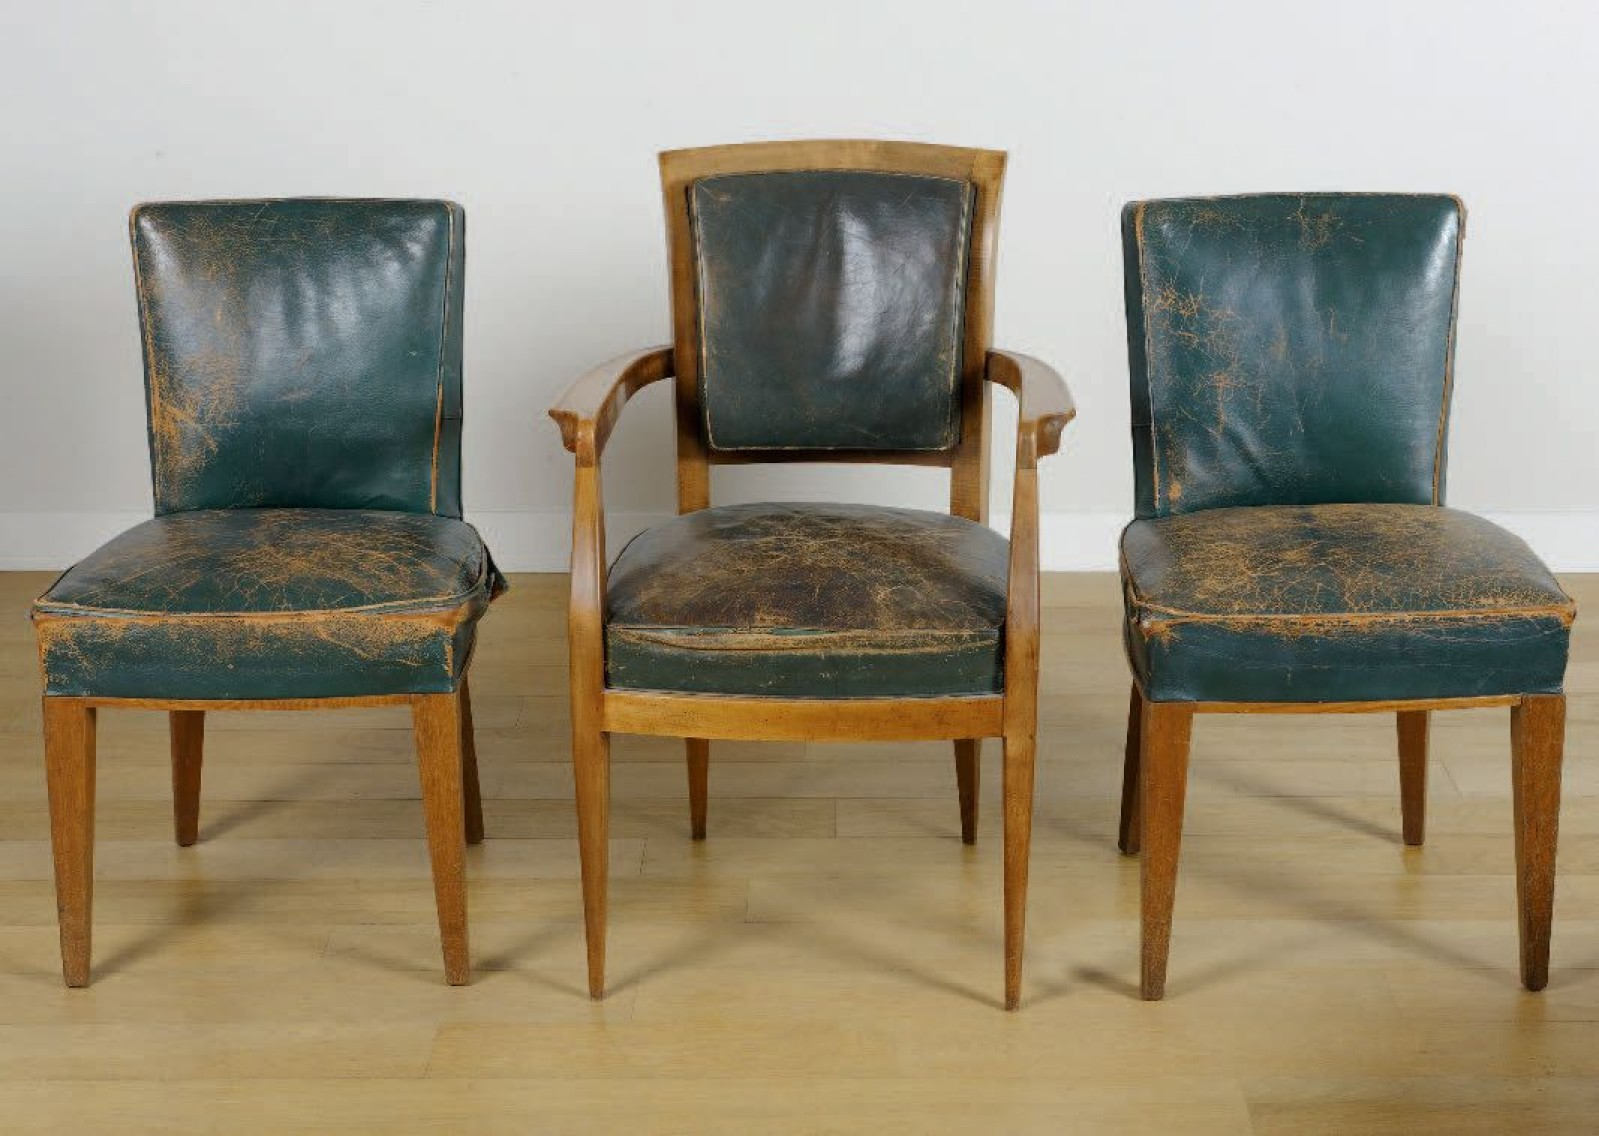 Auction Alfred Porteneuve 1896 1949 Fauteuil De Type Bridge